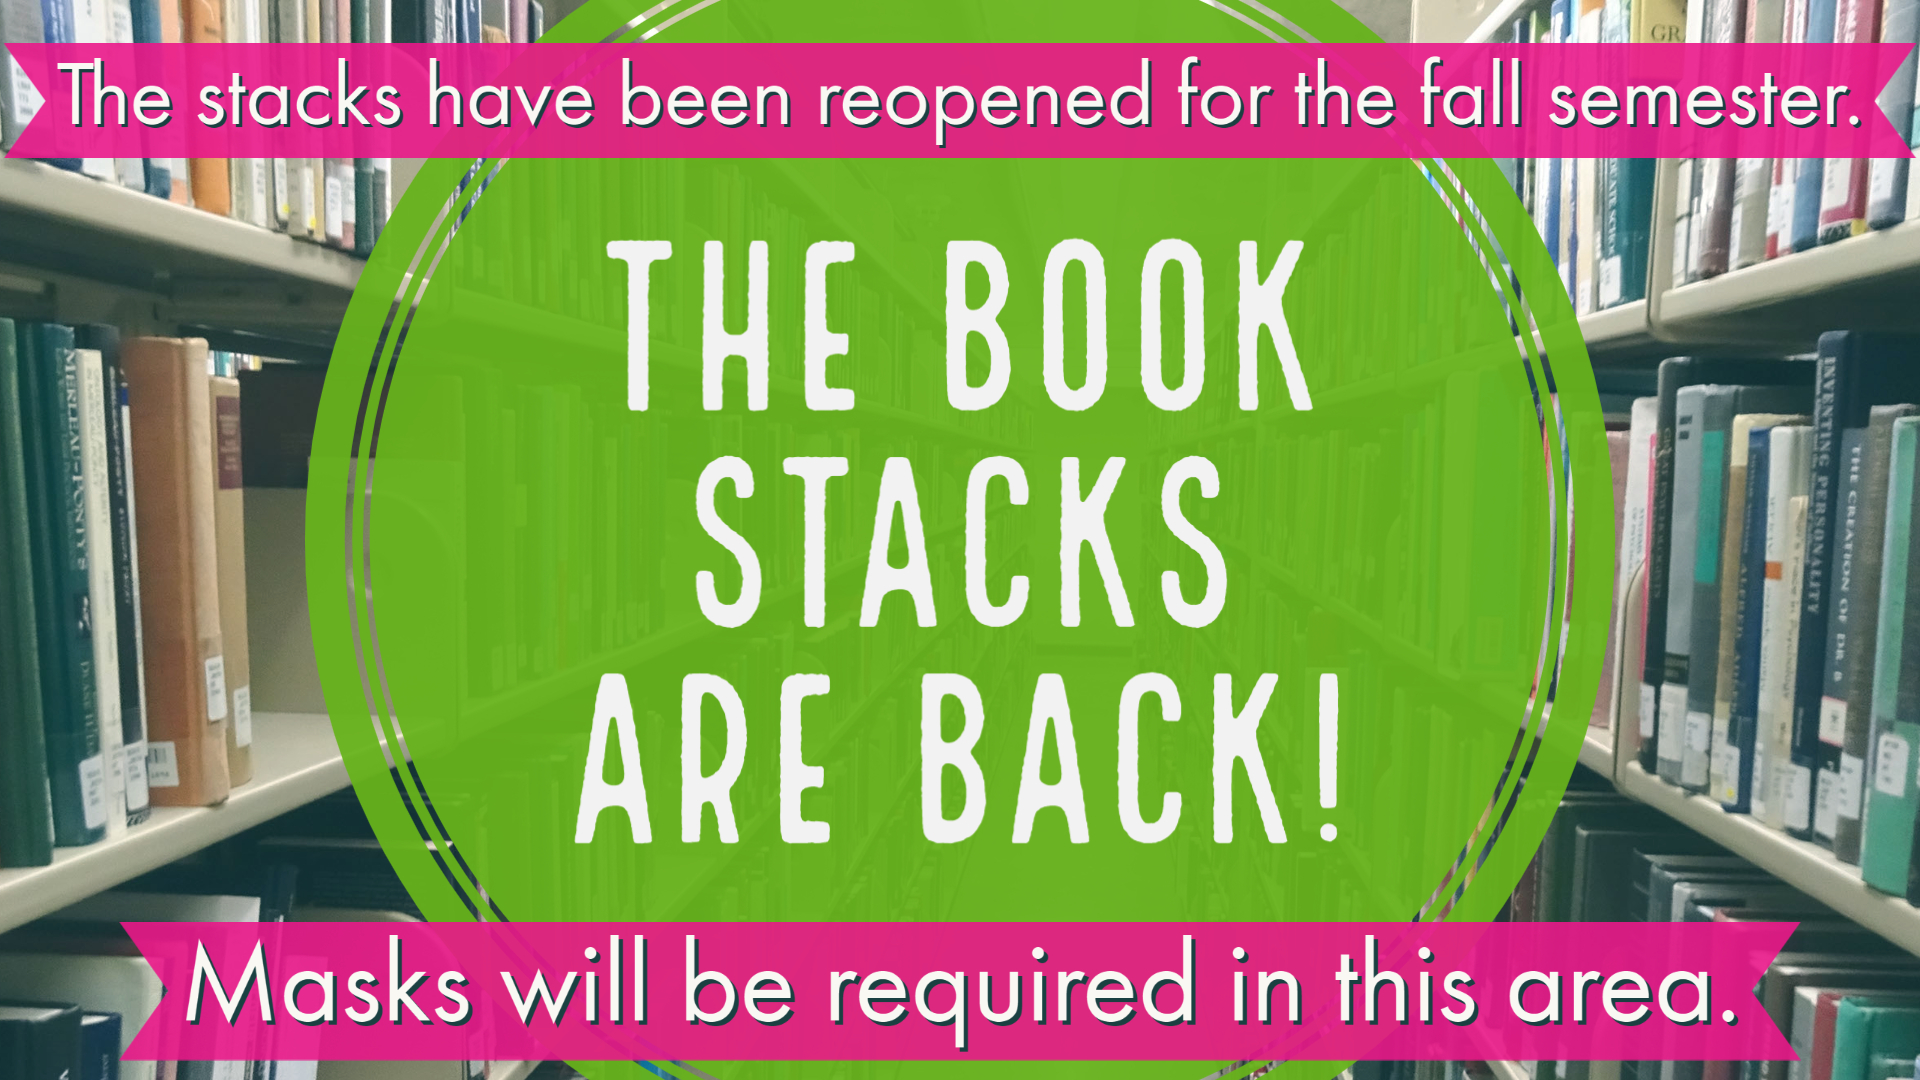 The book stacks have been reopened.